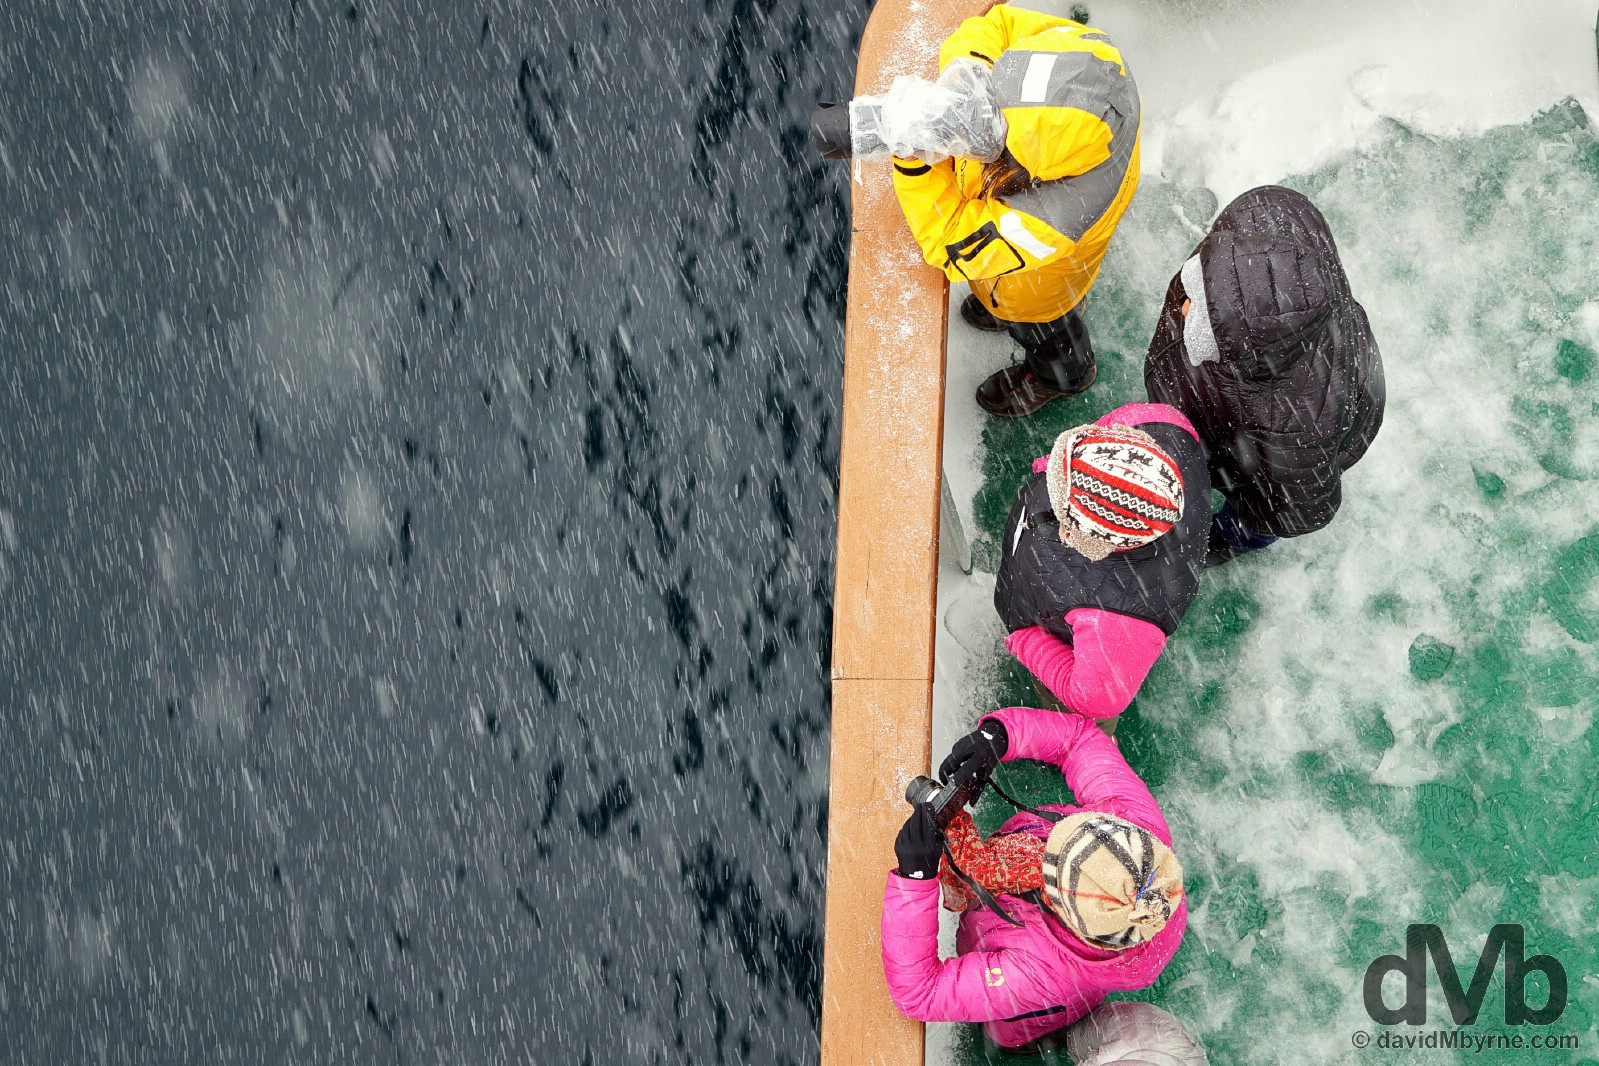 Whale watching in the driving snow off the deck of the M/V Ocean Endeavour in Wilhelmina Bay, Antarctica. December 2, 2015.